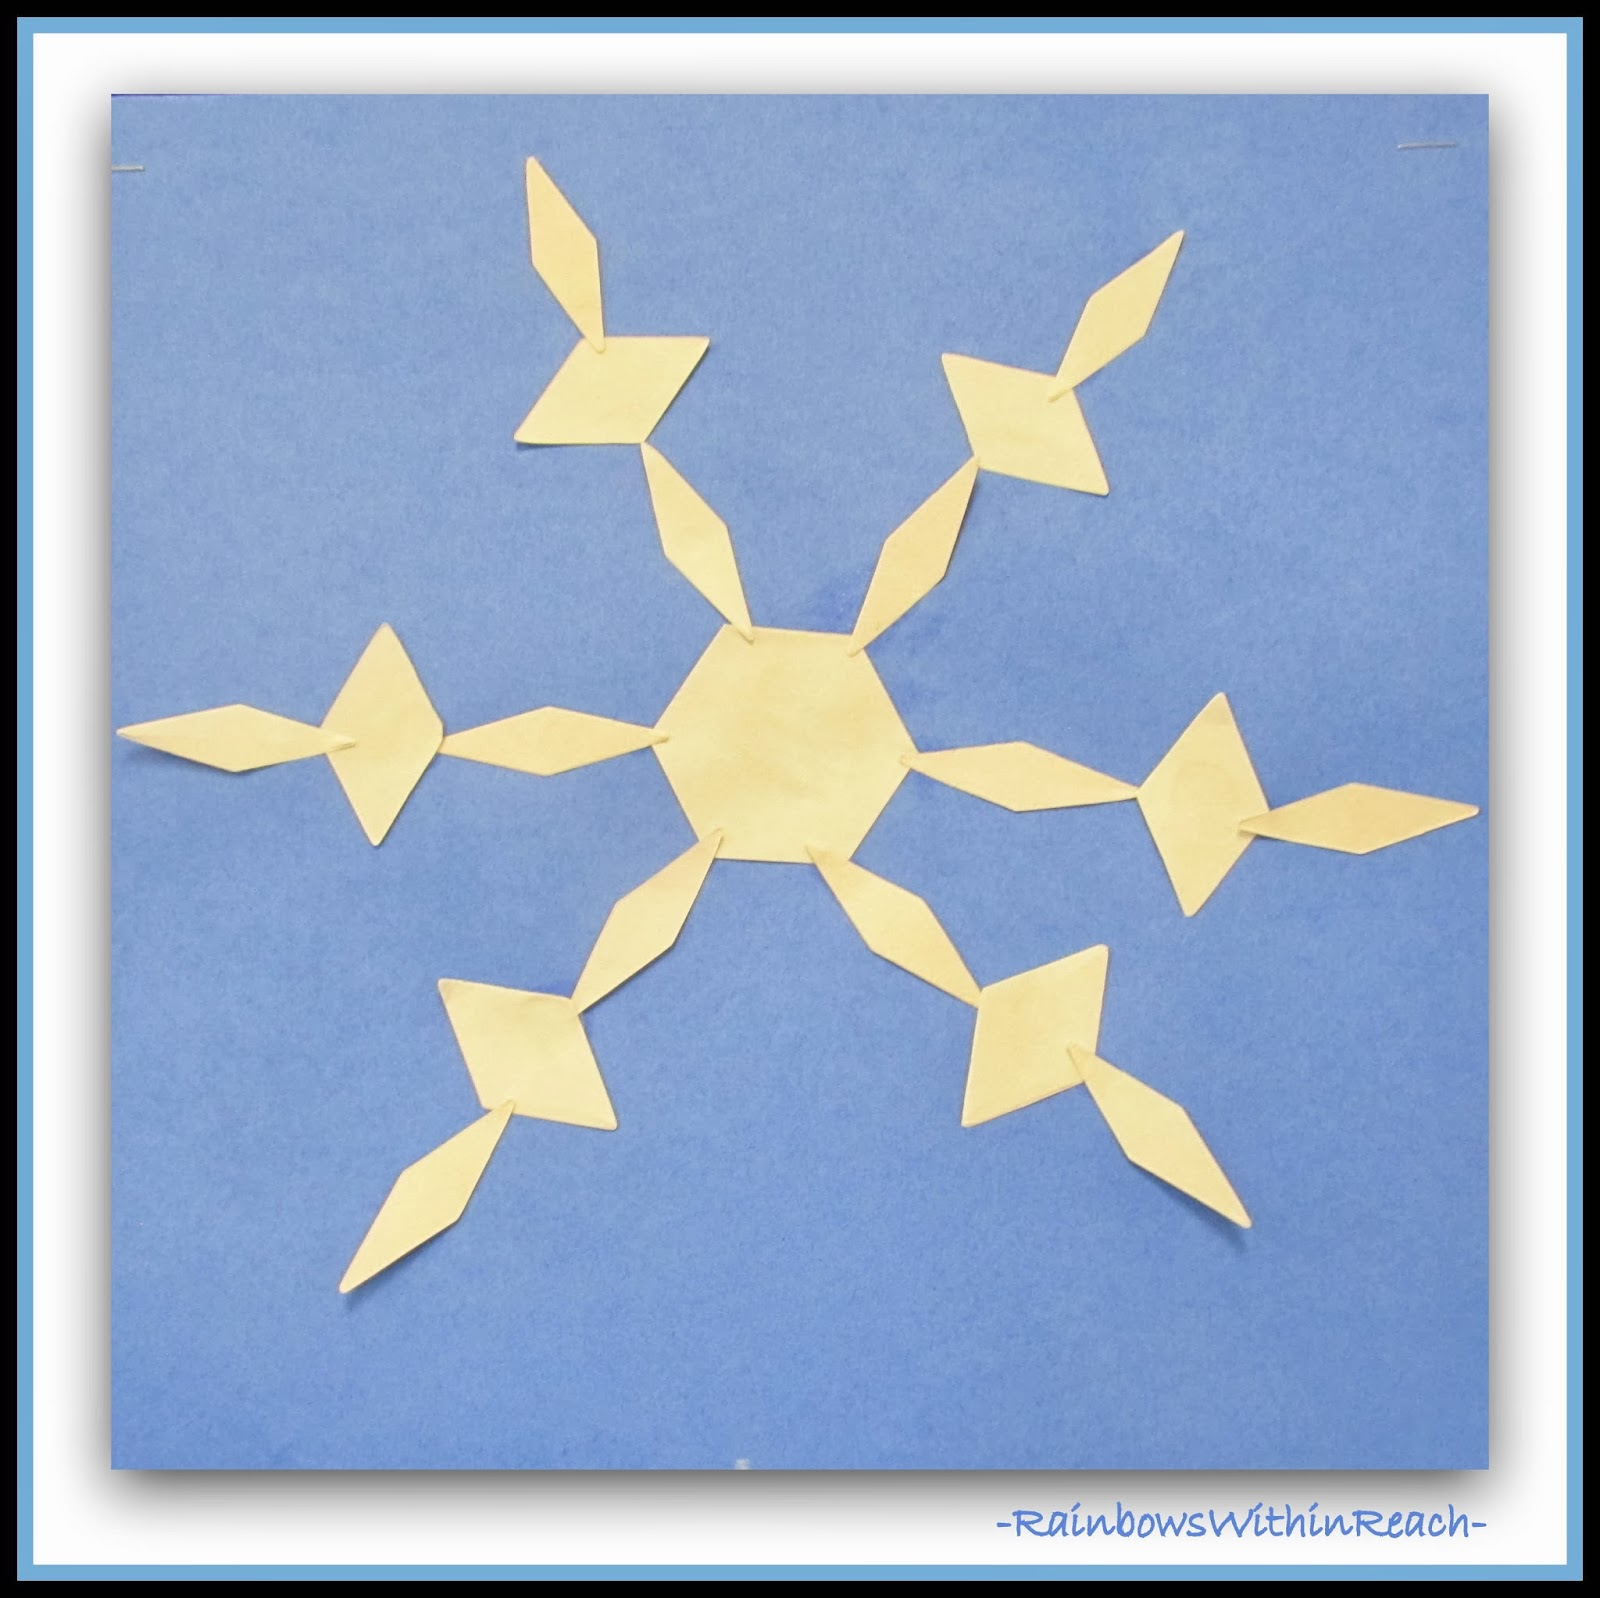 Kindergarten Snowflake Symmetry (from RainbowsWithinReach)